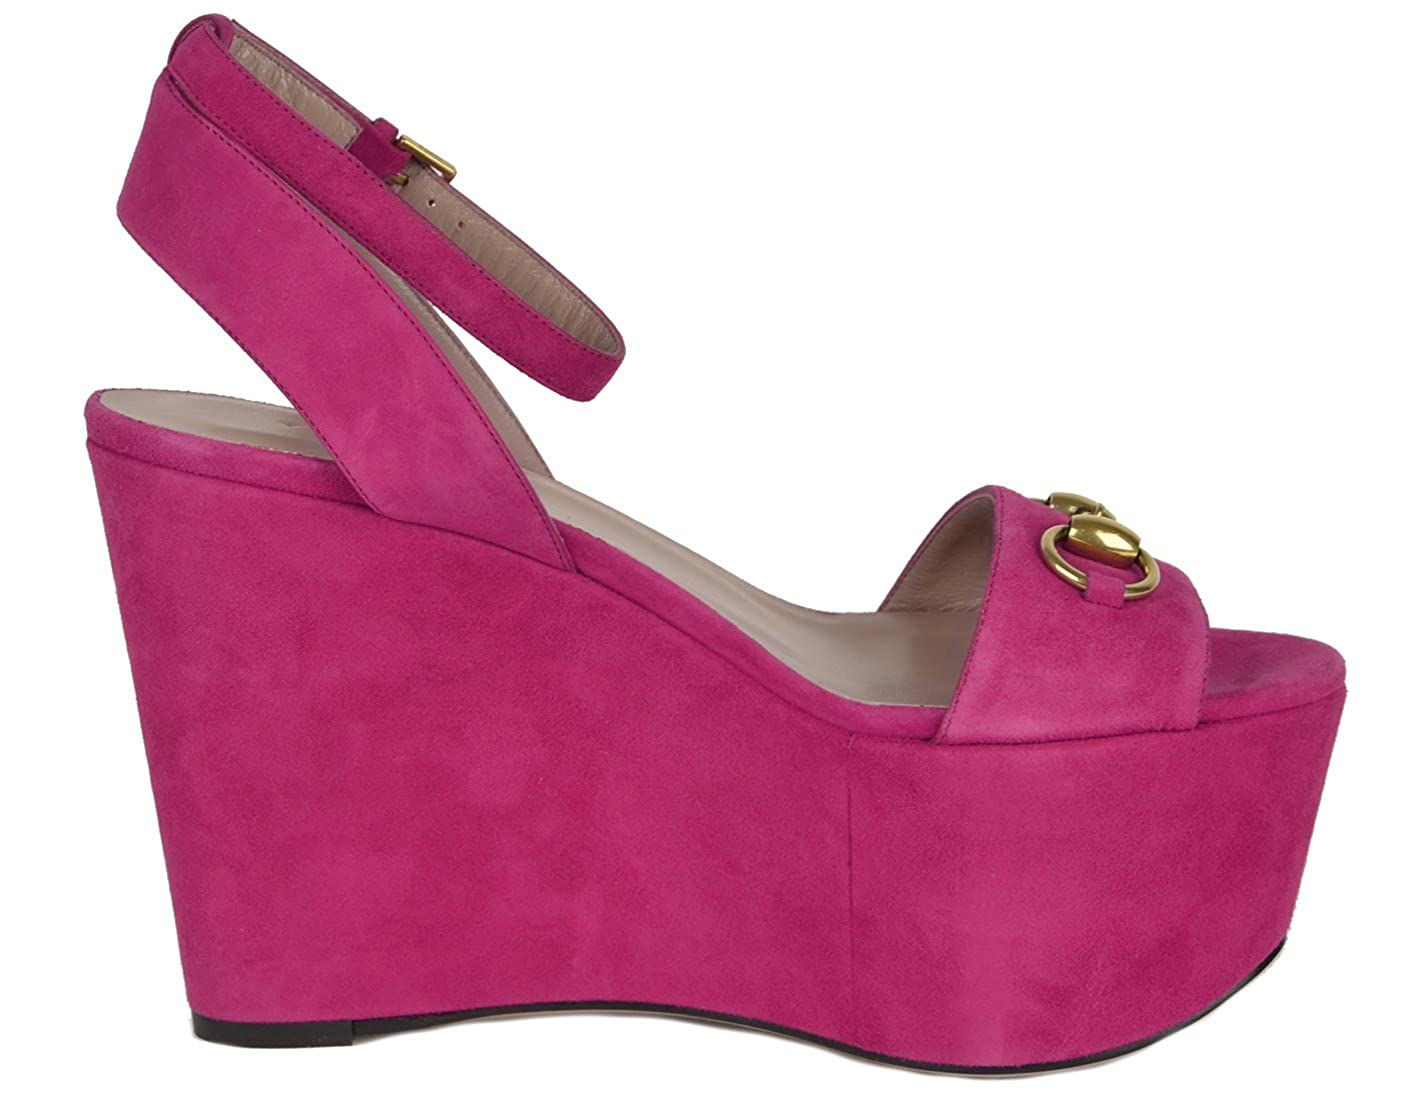 8d9f17fc746 Gucci Shoes Horsebit Fuchsia Suede Leather Wedge Platform Sandals (IT 38    US 8)  Amazon.ca  Shoes   Handbags